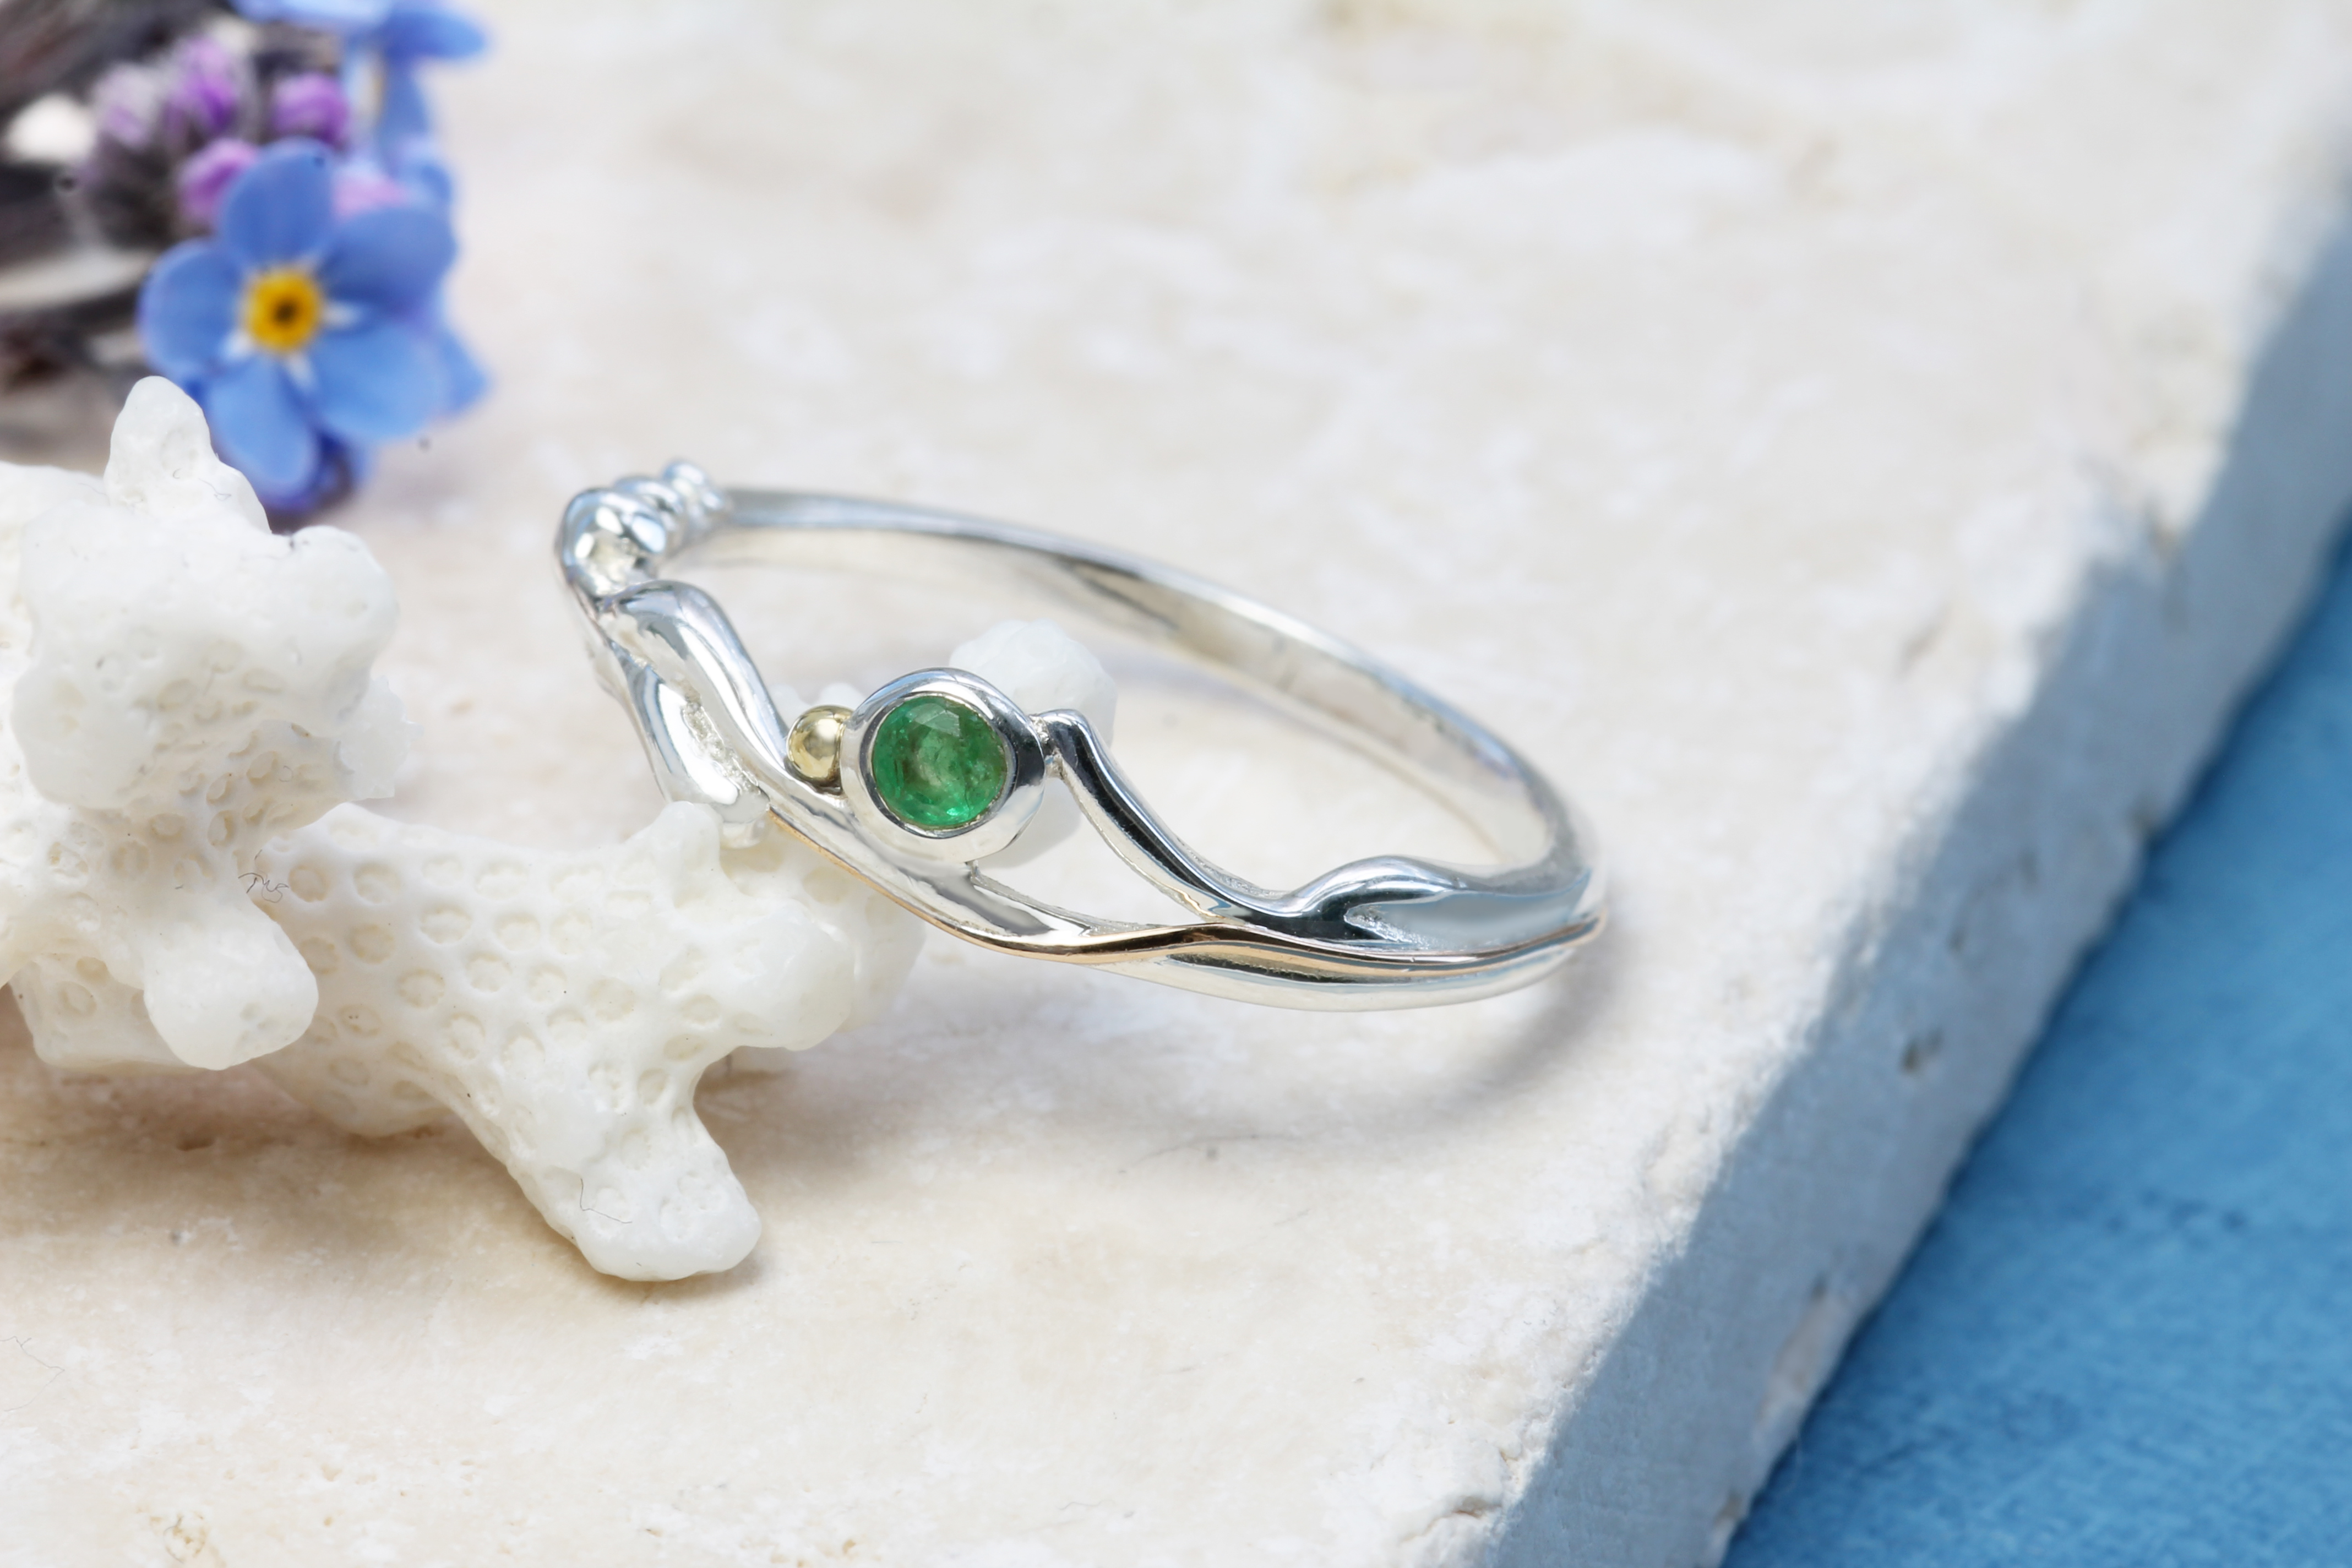 Emerald Ring in Sterling Silver with Gold details